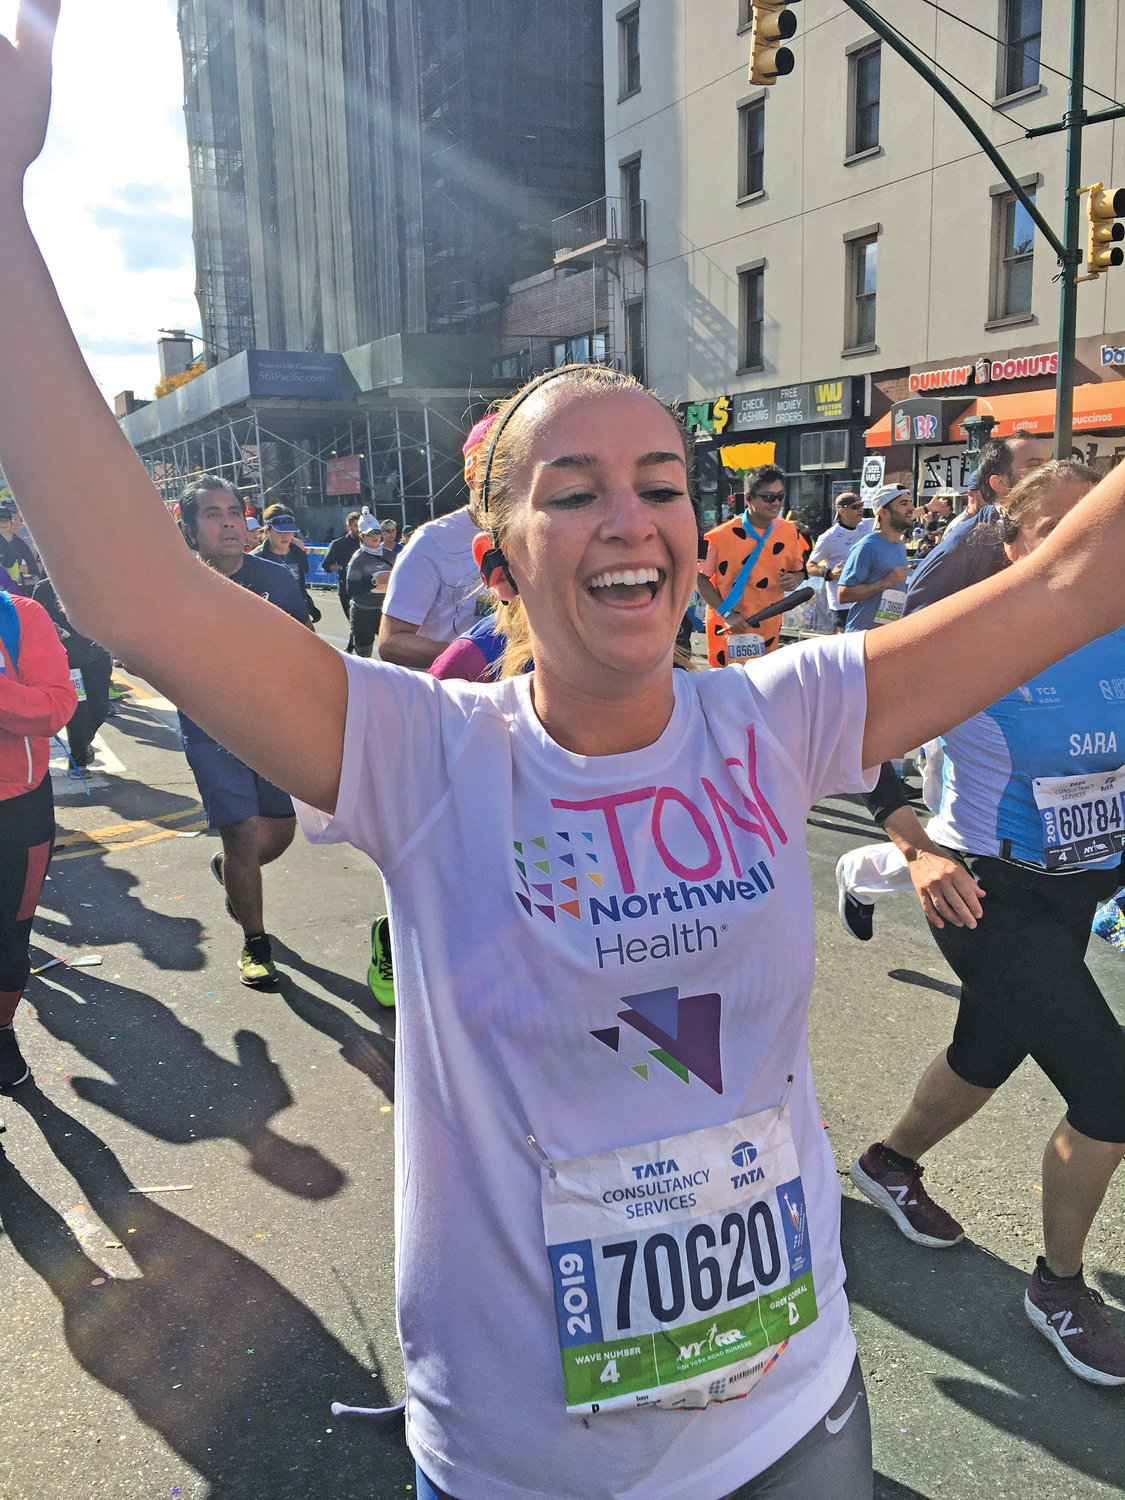 Tonya finished in 5 hours, 23 minutes, and raised $3,000 for Northwell Health, where one of her cheerleaders was treated for cancer.